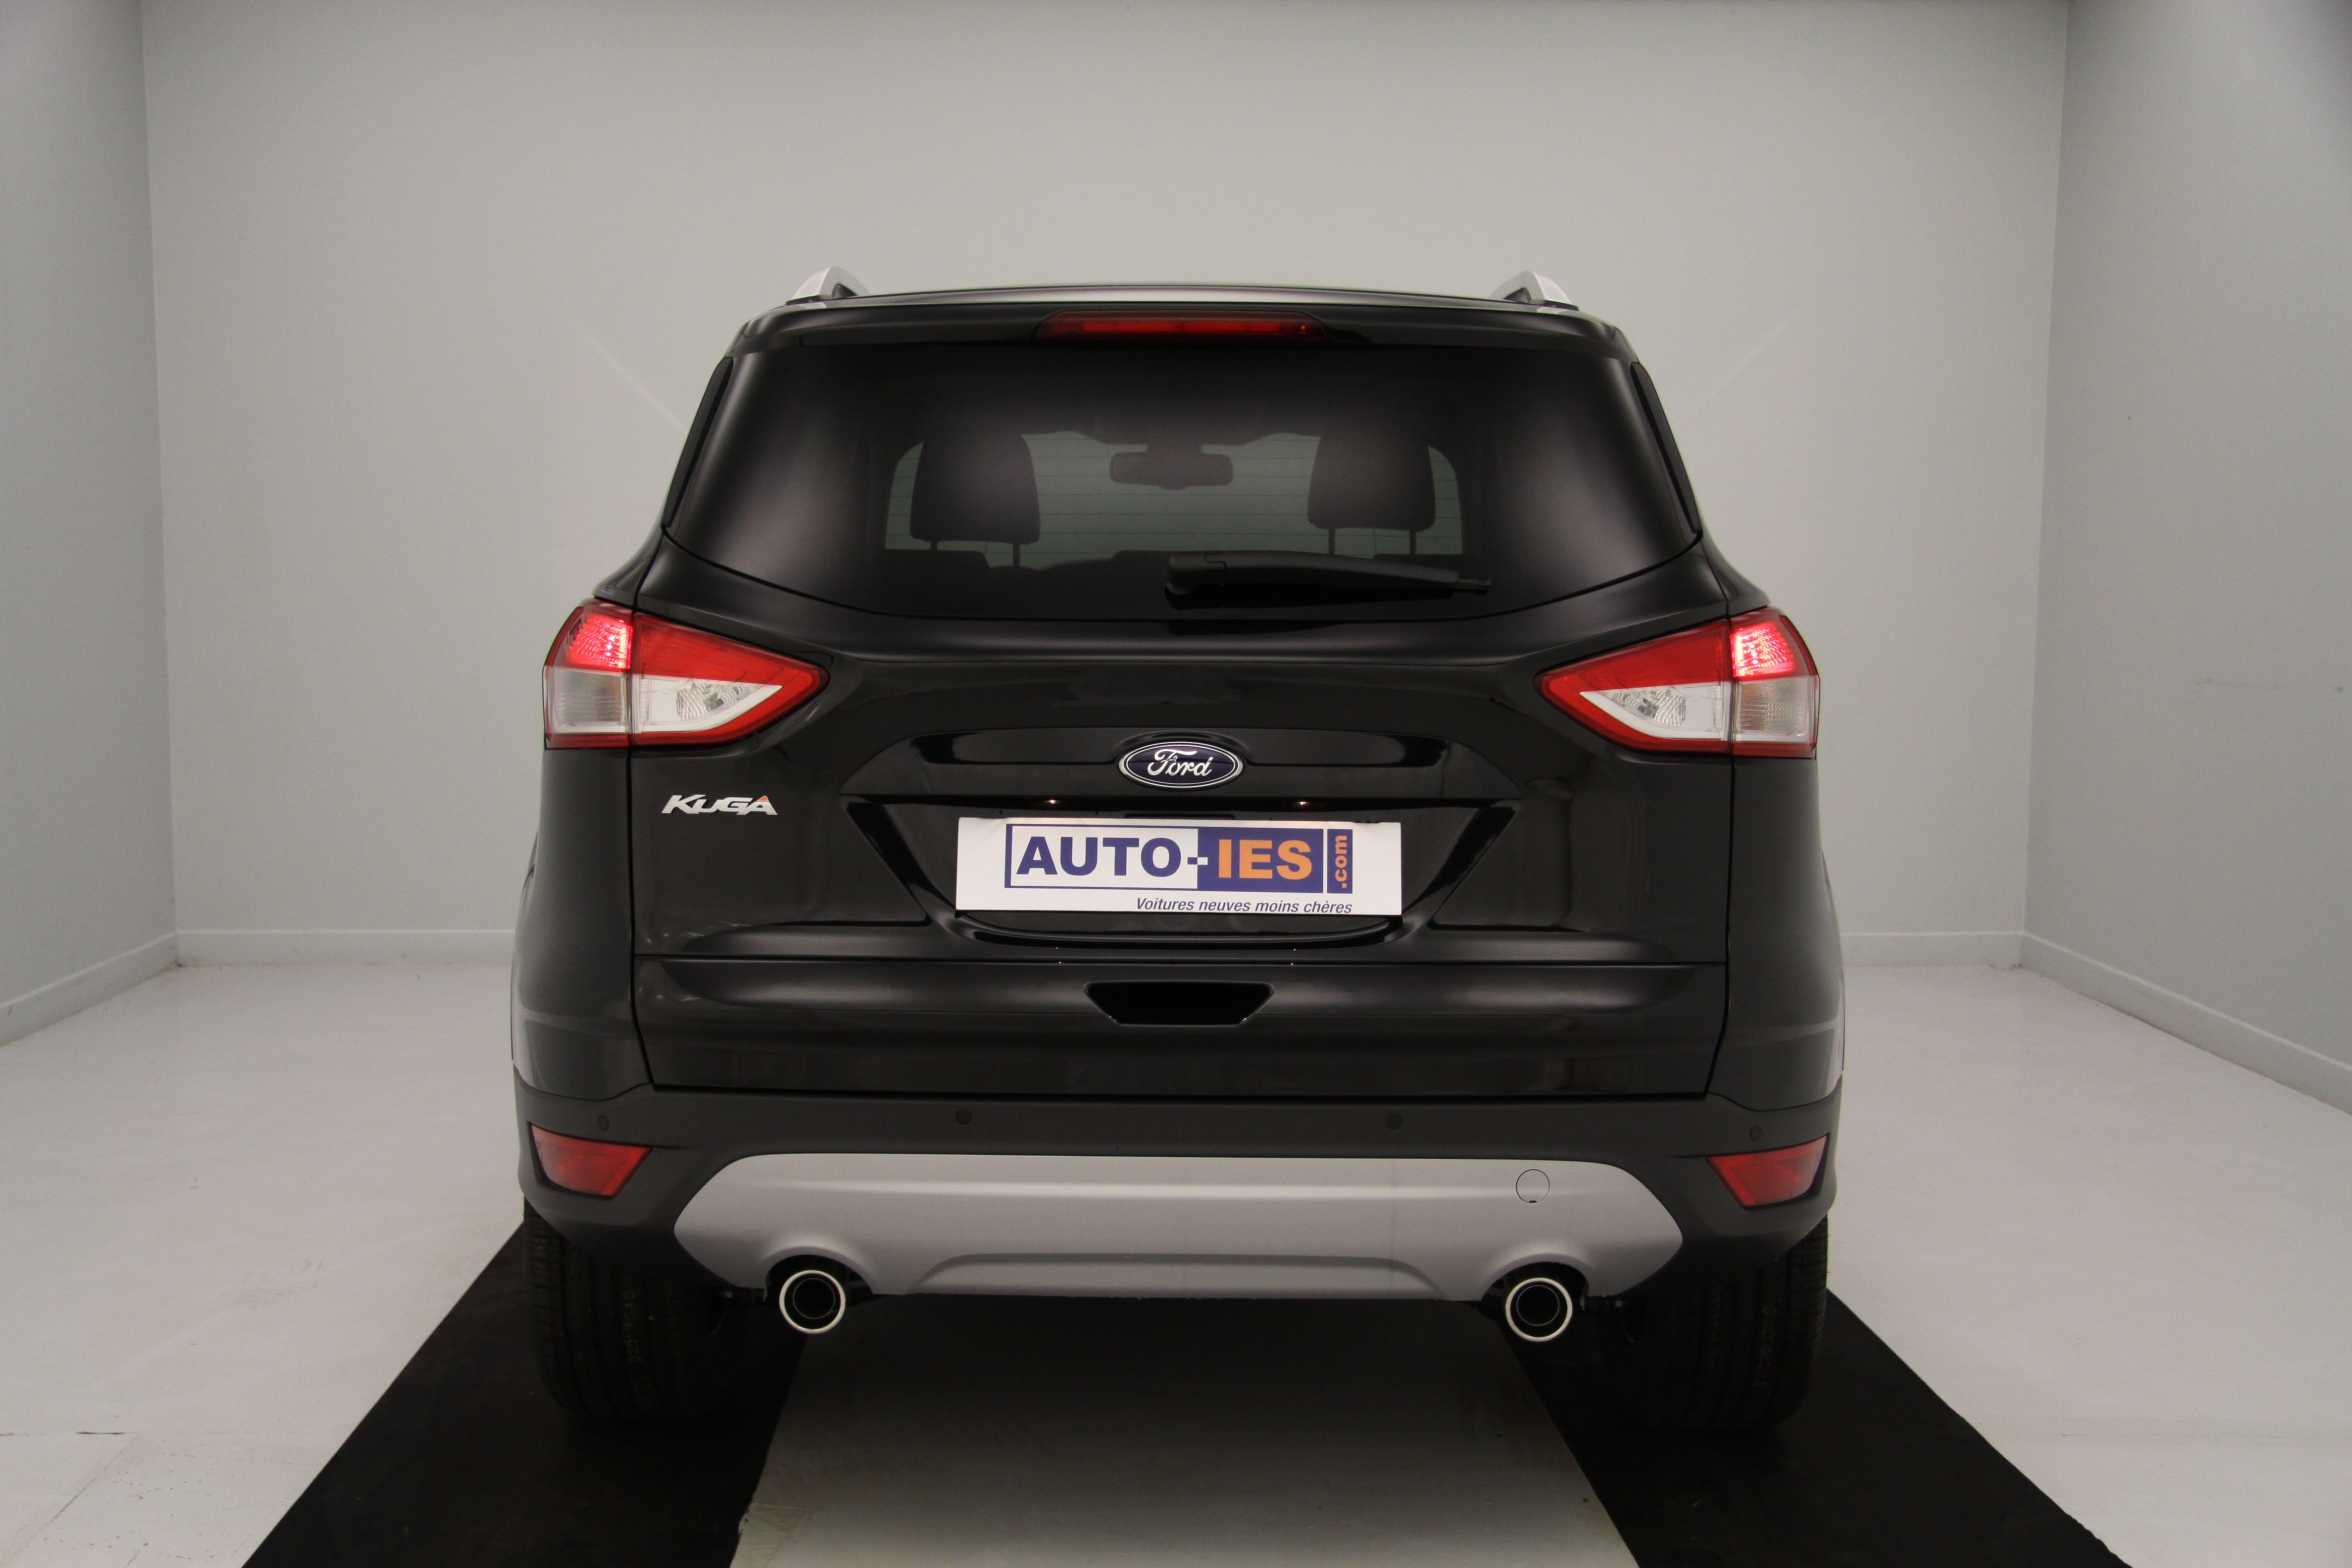 ford kuga 2 0 tdci 140 fap 4x2 titanium noir scala avec options 25 118. Black Bedroom Furniture Sets. Home Design Ideas